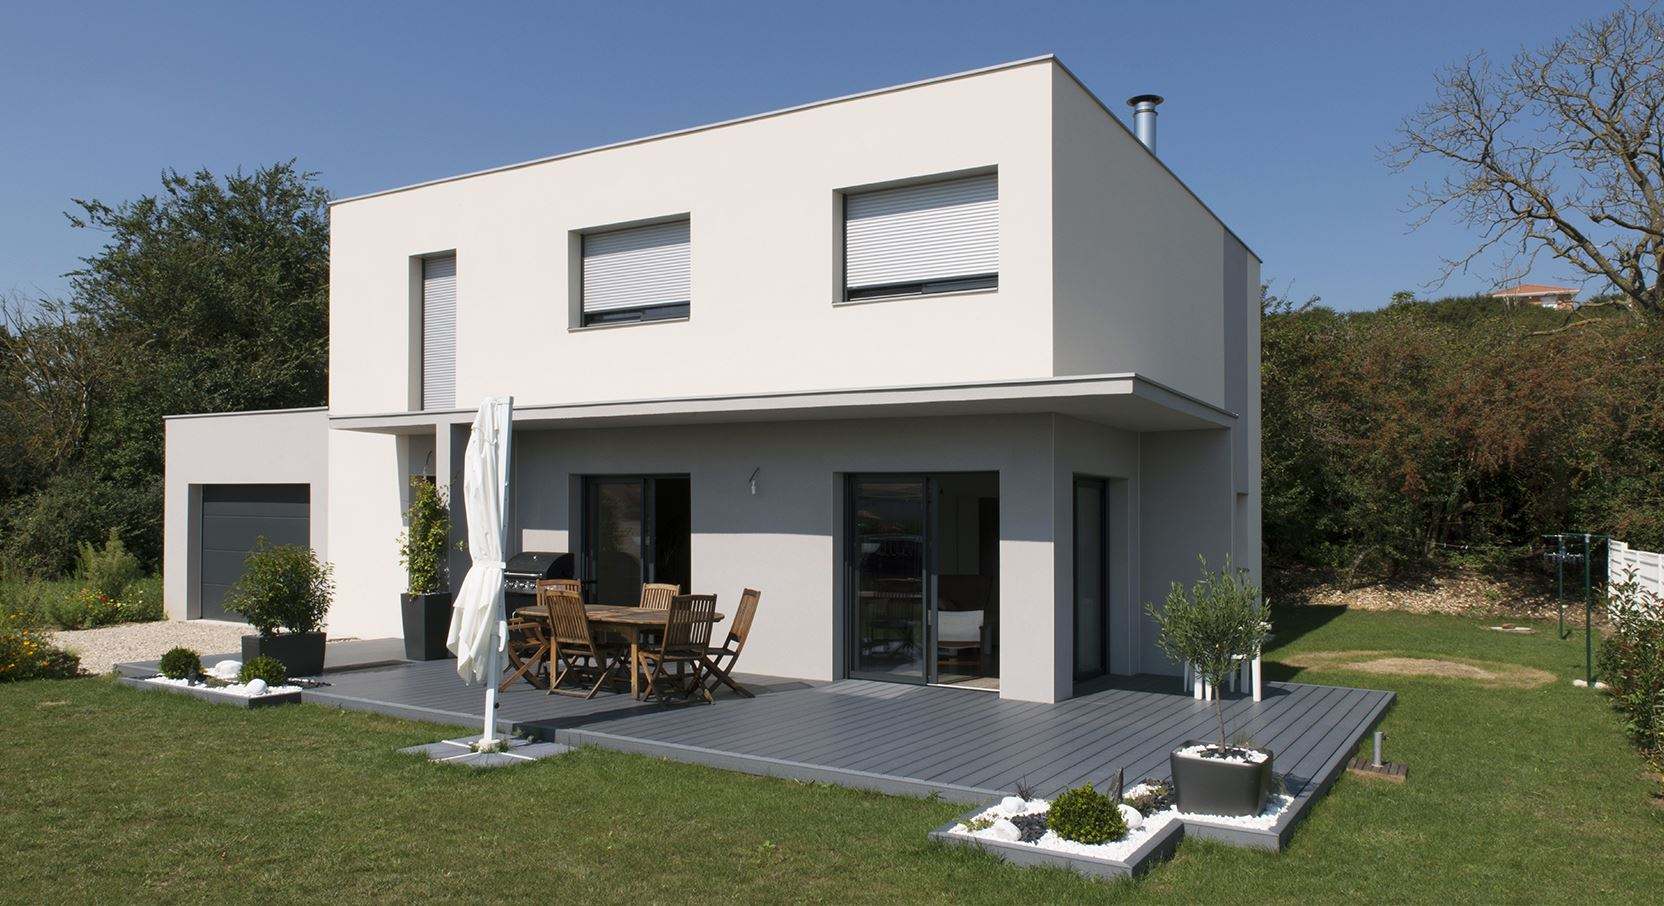 Photo maison contemporaine mc immo for Plan maison architecte moderne